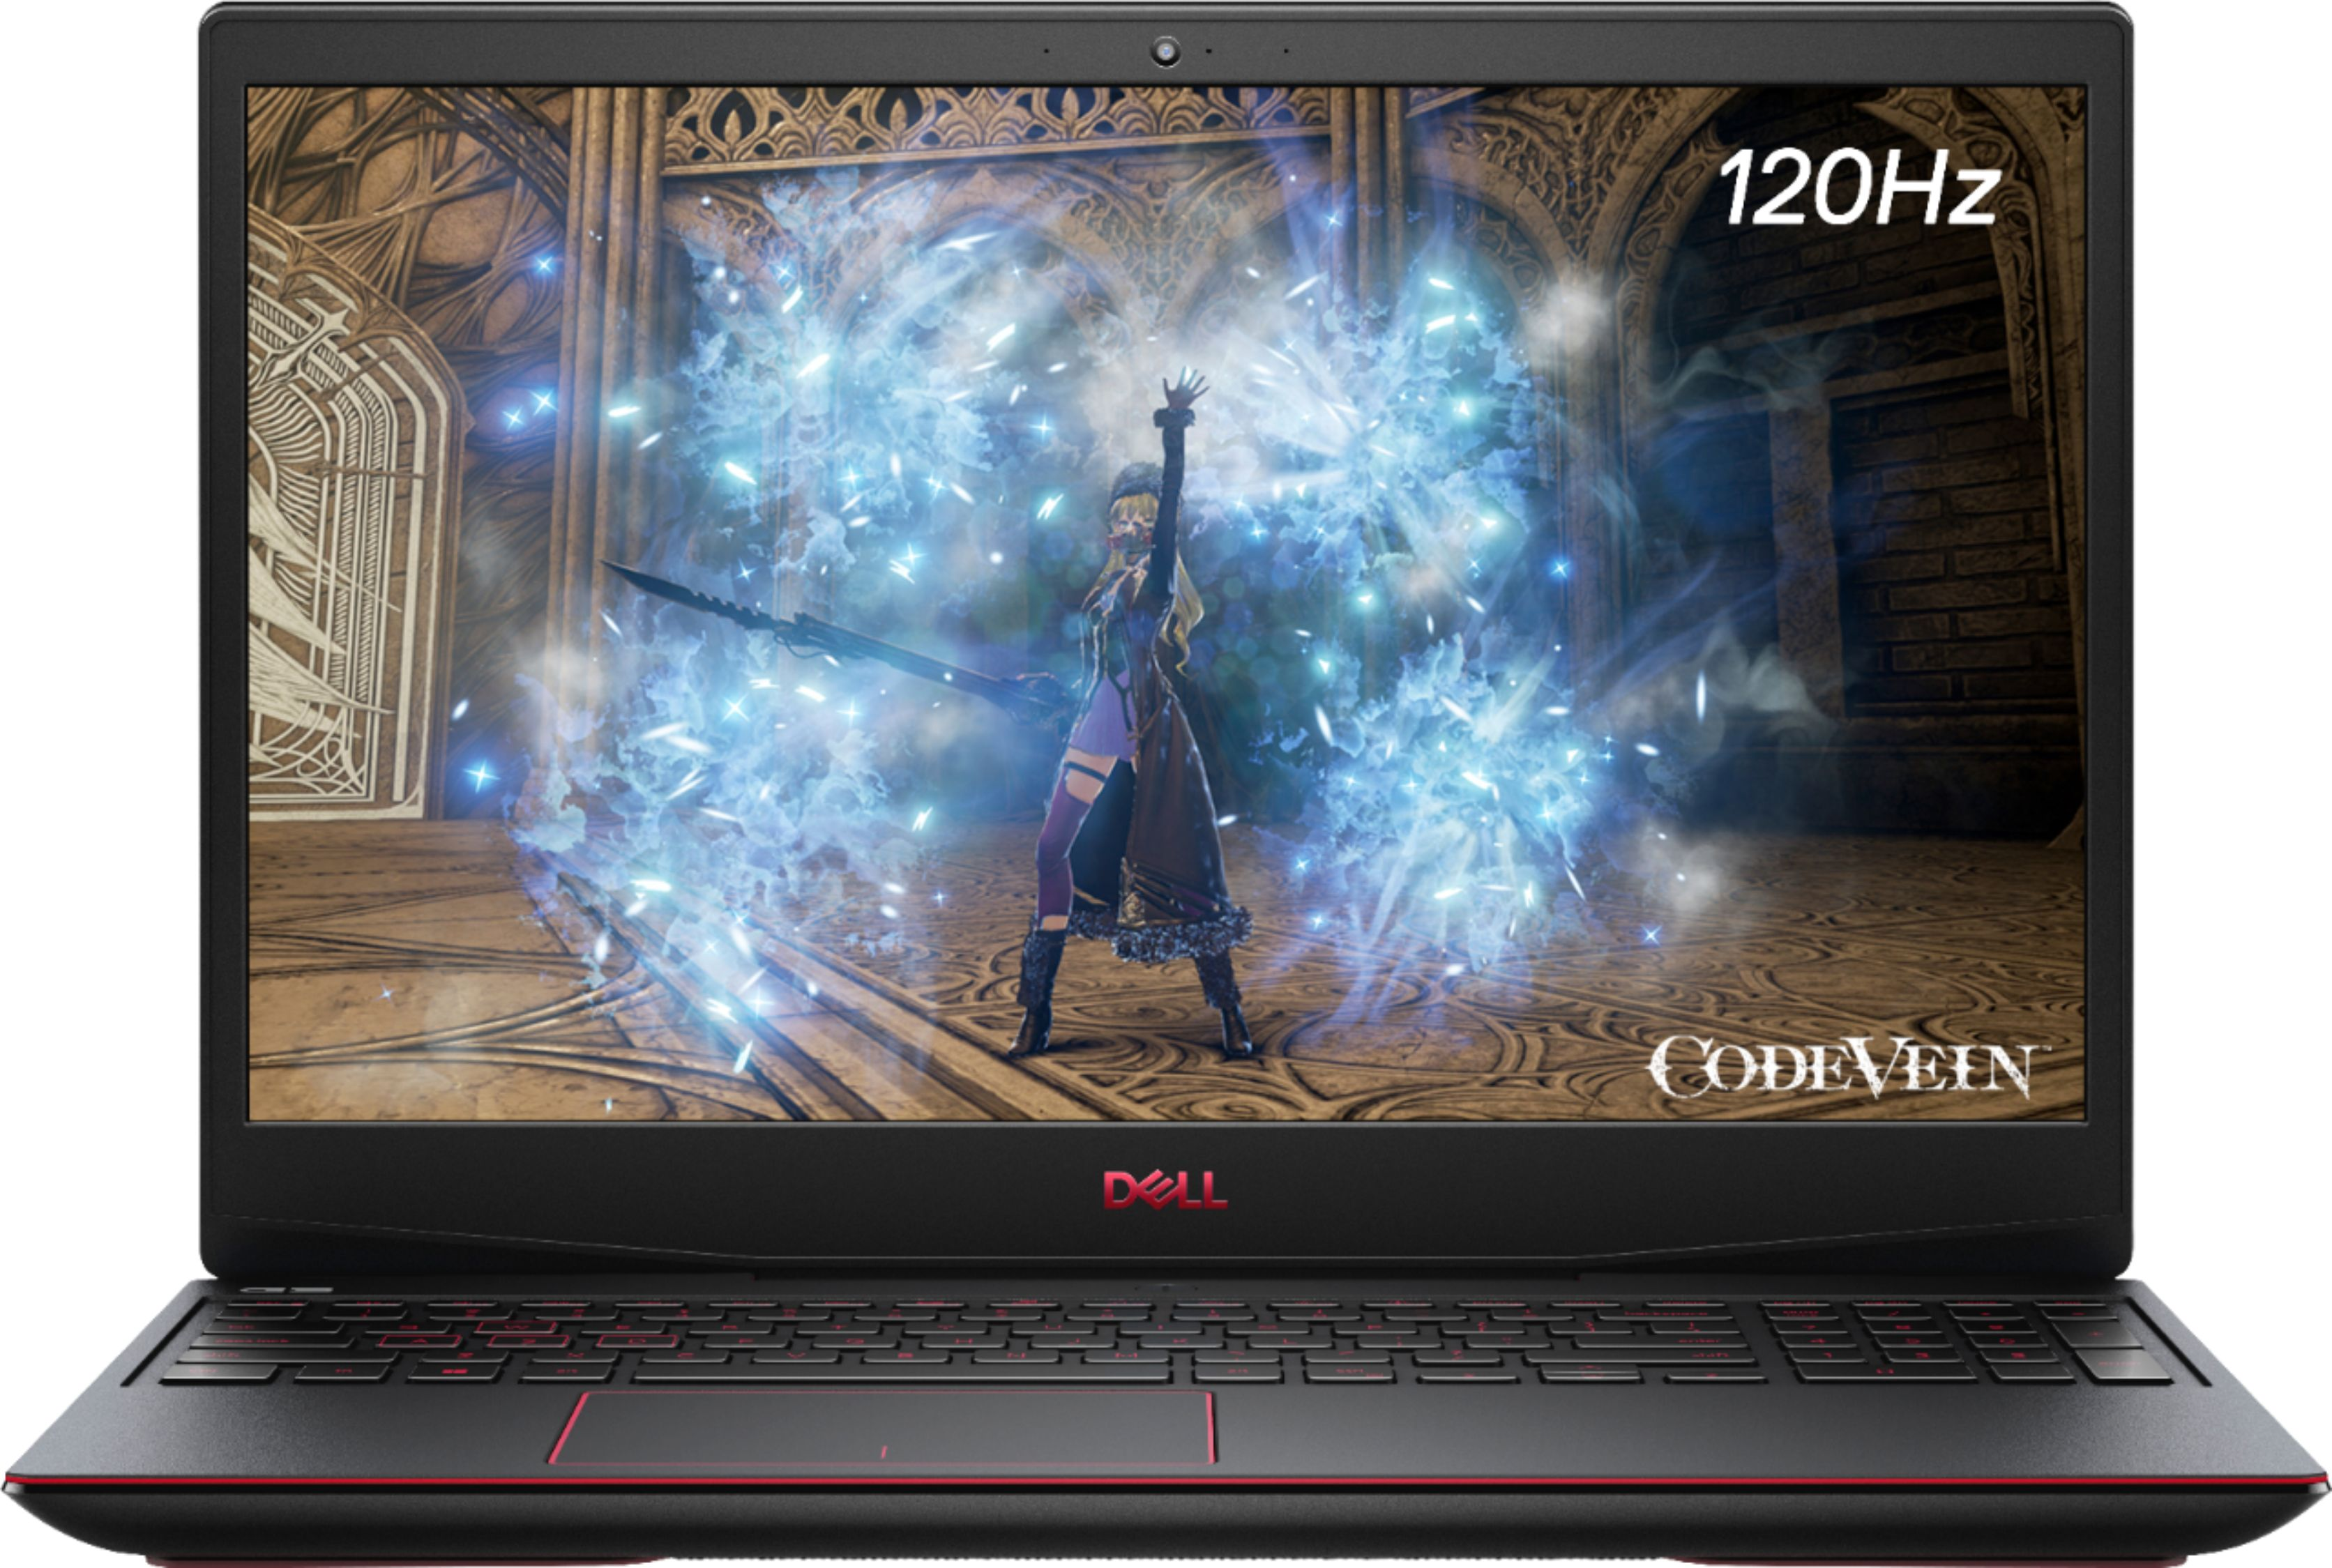 """Front Zoom. Dell - G3 15.6"""" Gaming Laptop - 120Hz -Intel Core i5- 8GB Memory - NVIDIA GeForce GTX 1650 Ti  - 512GB SSD - red print keyboard - Black."""